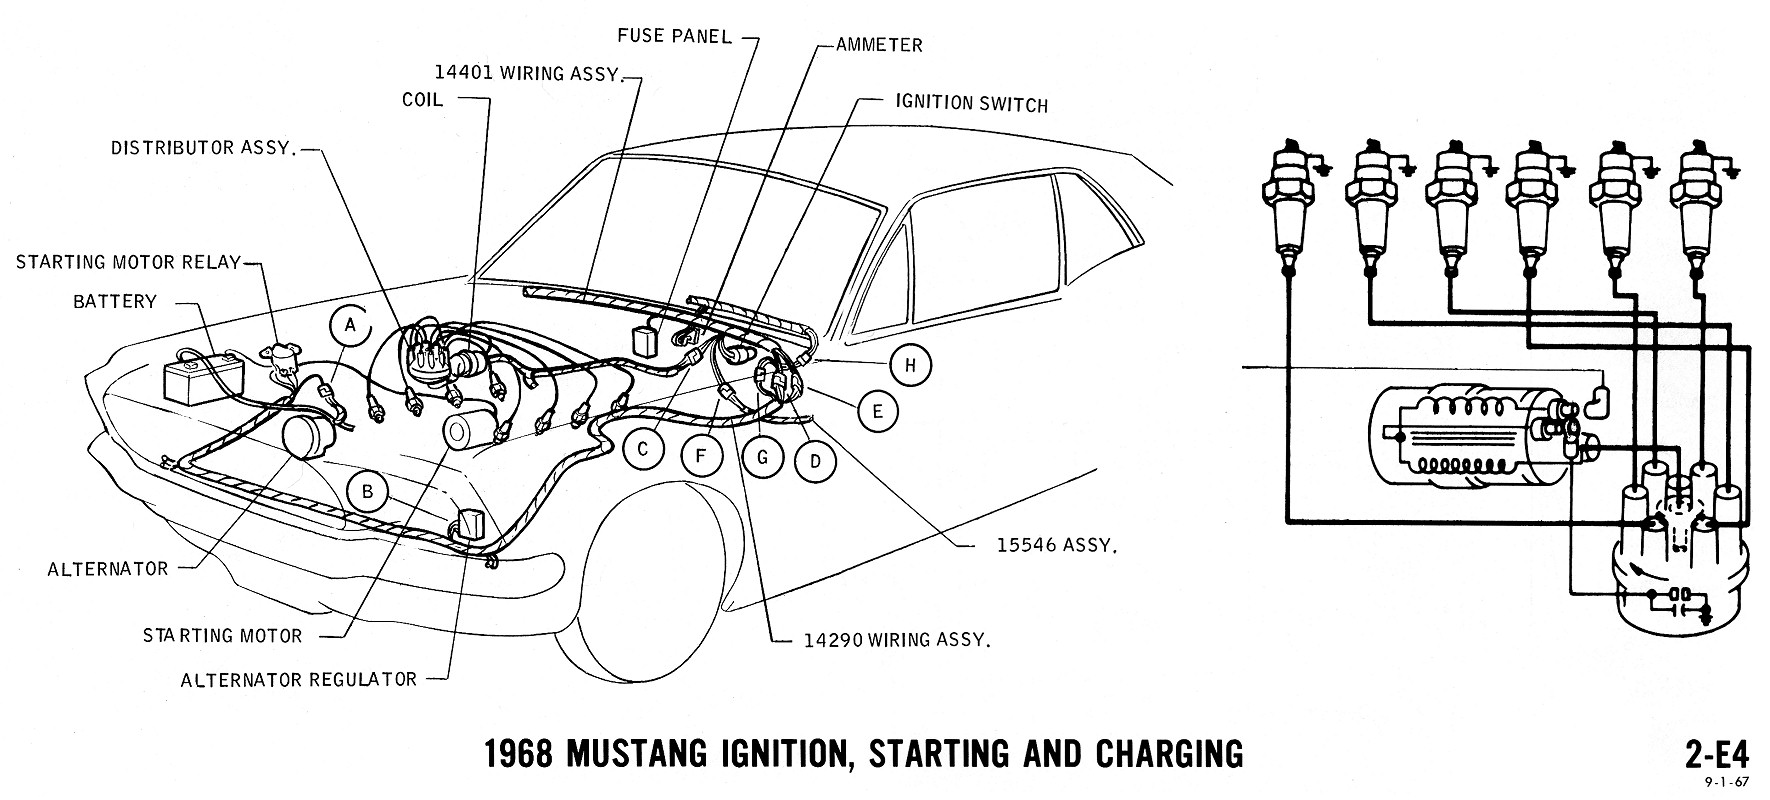 1968 mustang alternator wiring catalogue of schemas pin on wiring diagrams